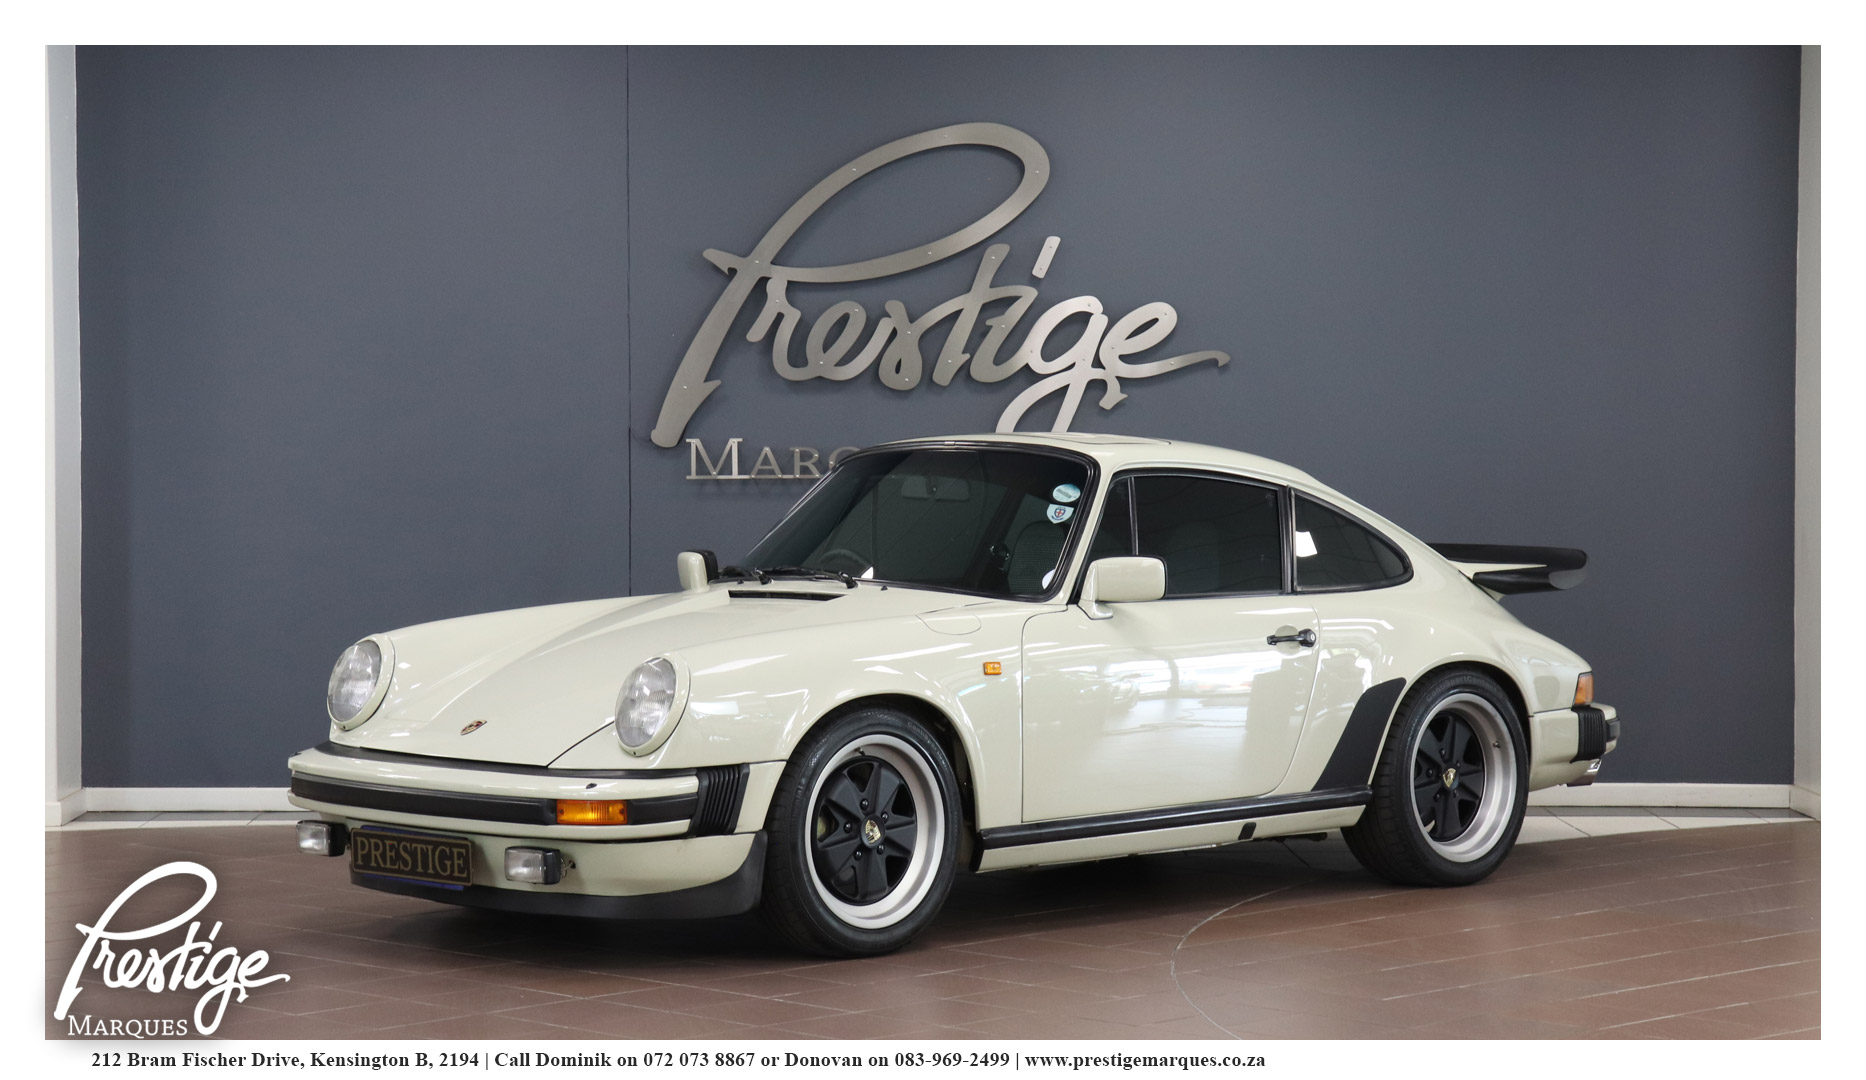 1982-Porsche-911-Carrera-20-Year-Anniversary-Tribute-Build-Prestige-Marques-Randburg-Sandton-7